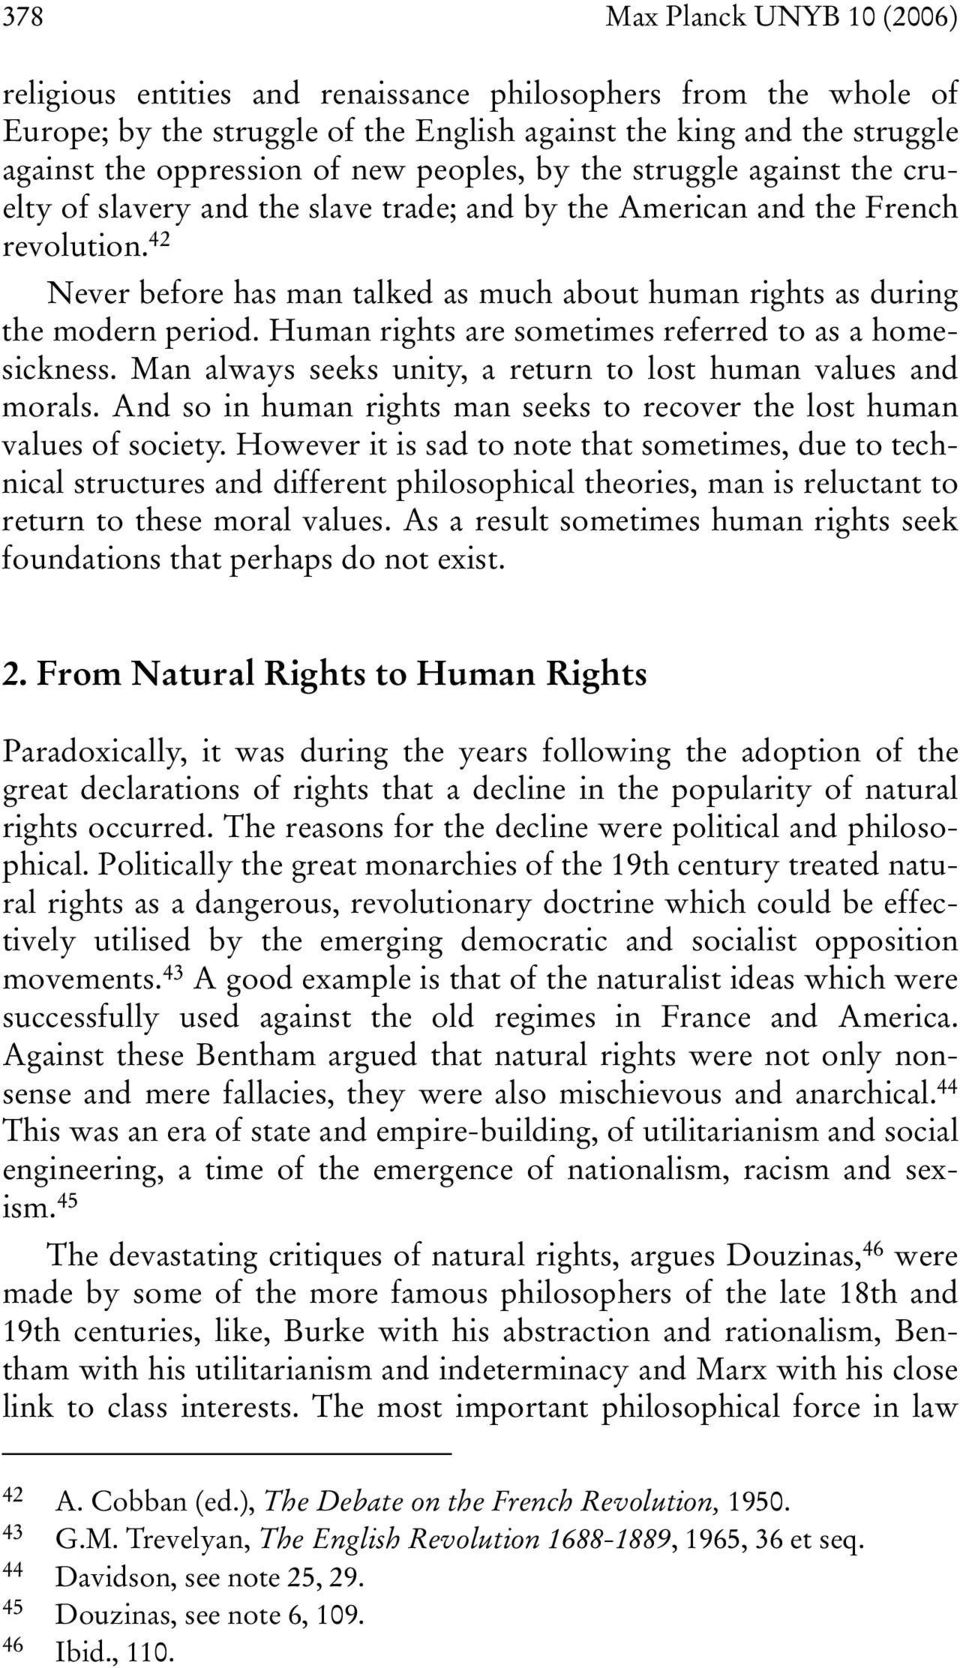 42 Never before has man talked as much about human rights as during the modern period. Human rights are sometimes referred to as a homesickness.